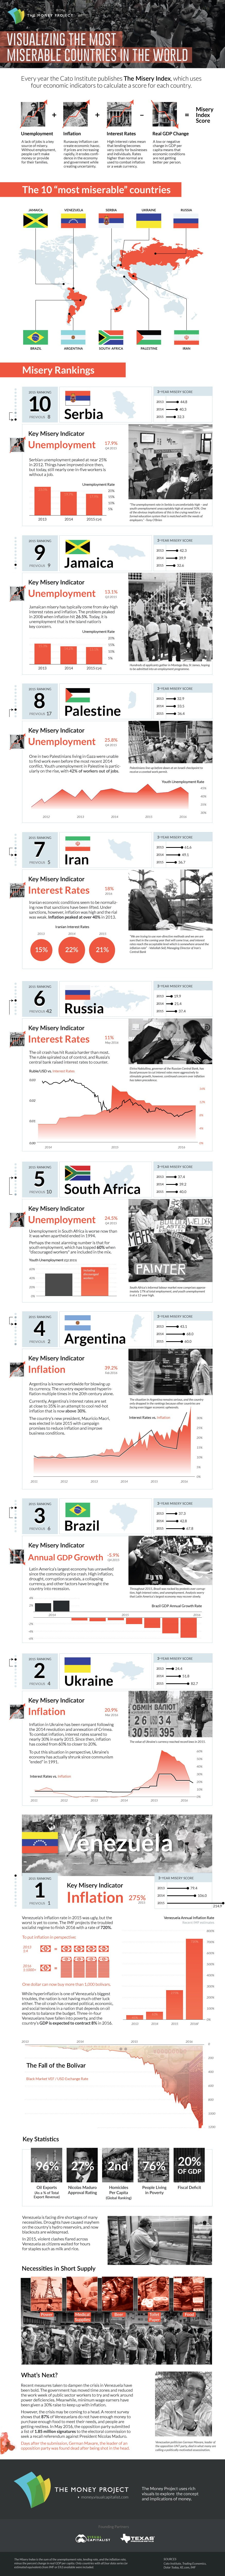 misery-index-final-infographic